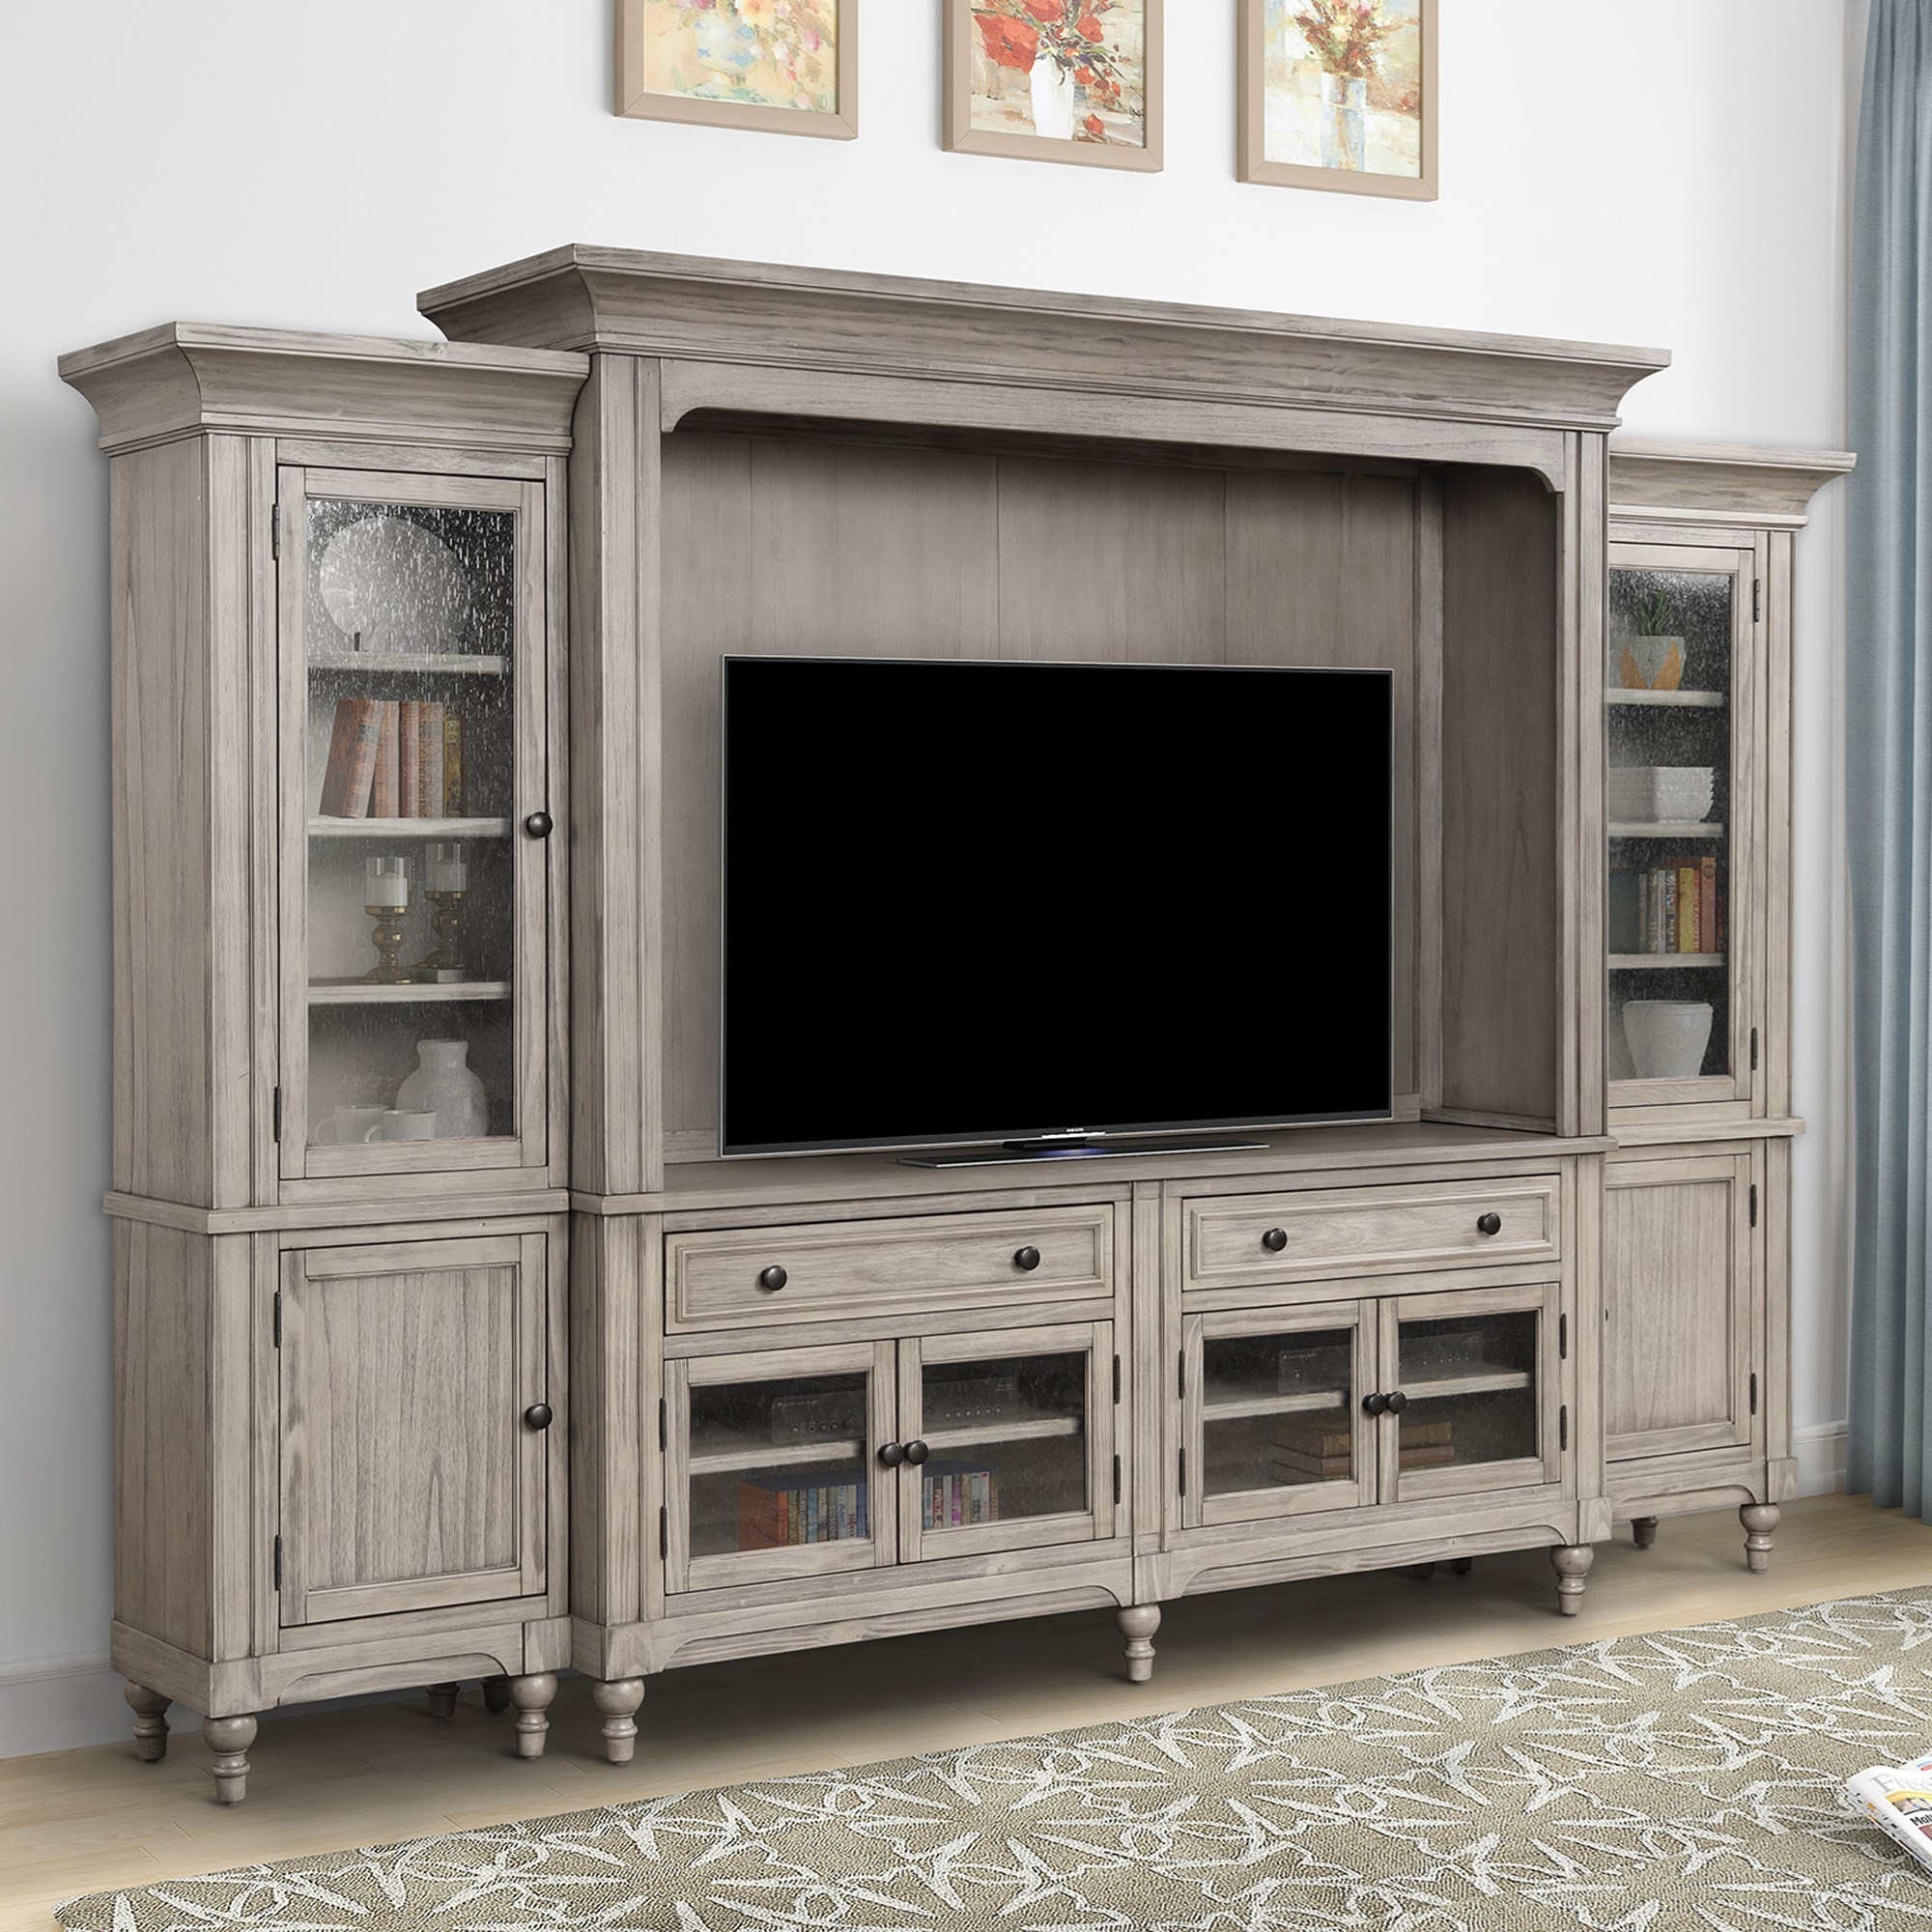 Cottage Style Entertainment Center with Storage